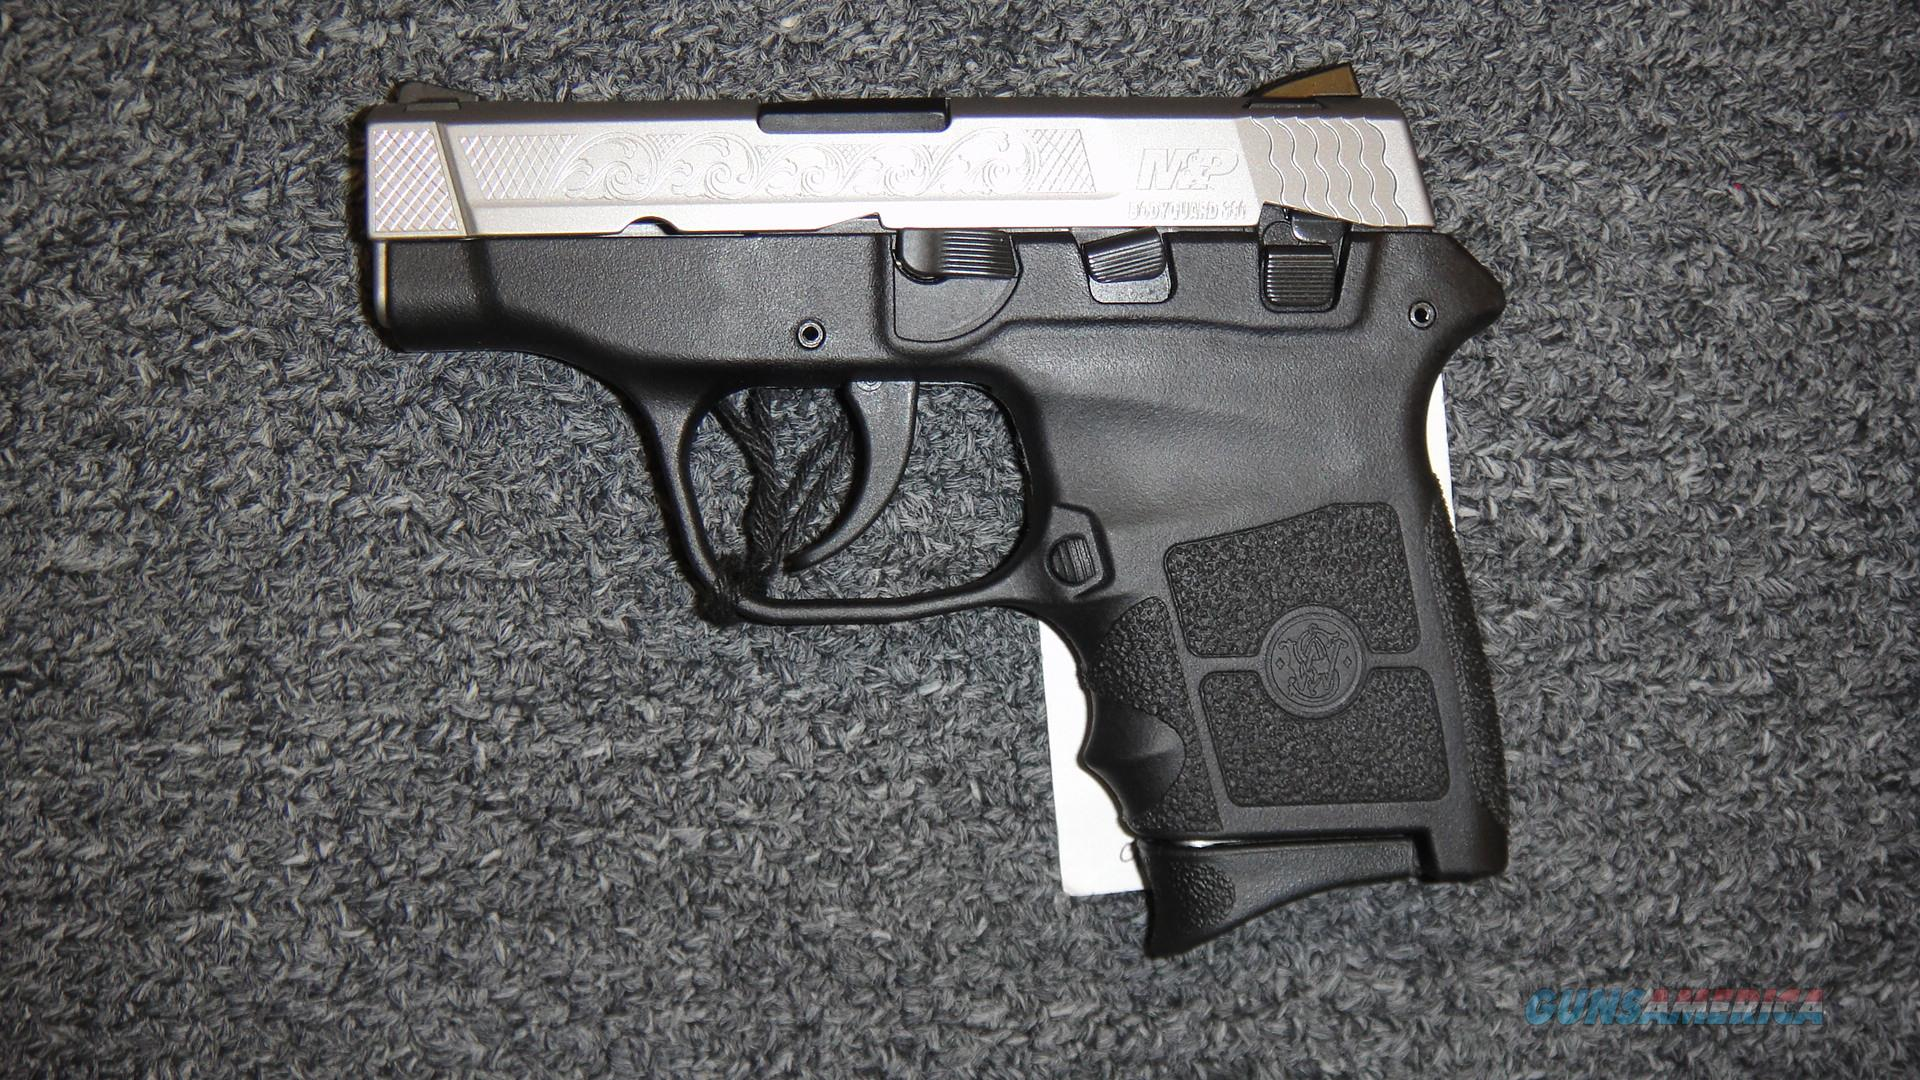 Smith & Wesson M&P Bodyguard 380 Stainless Engraved Slide  Guns > Pistols > Smith & Wesson Pistols - Autos > Polymer Frame